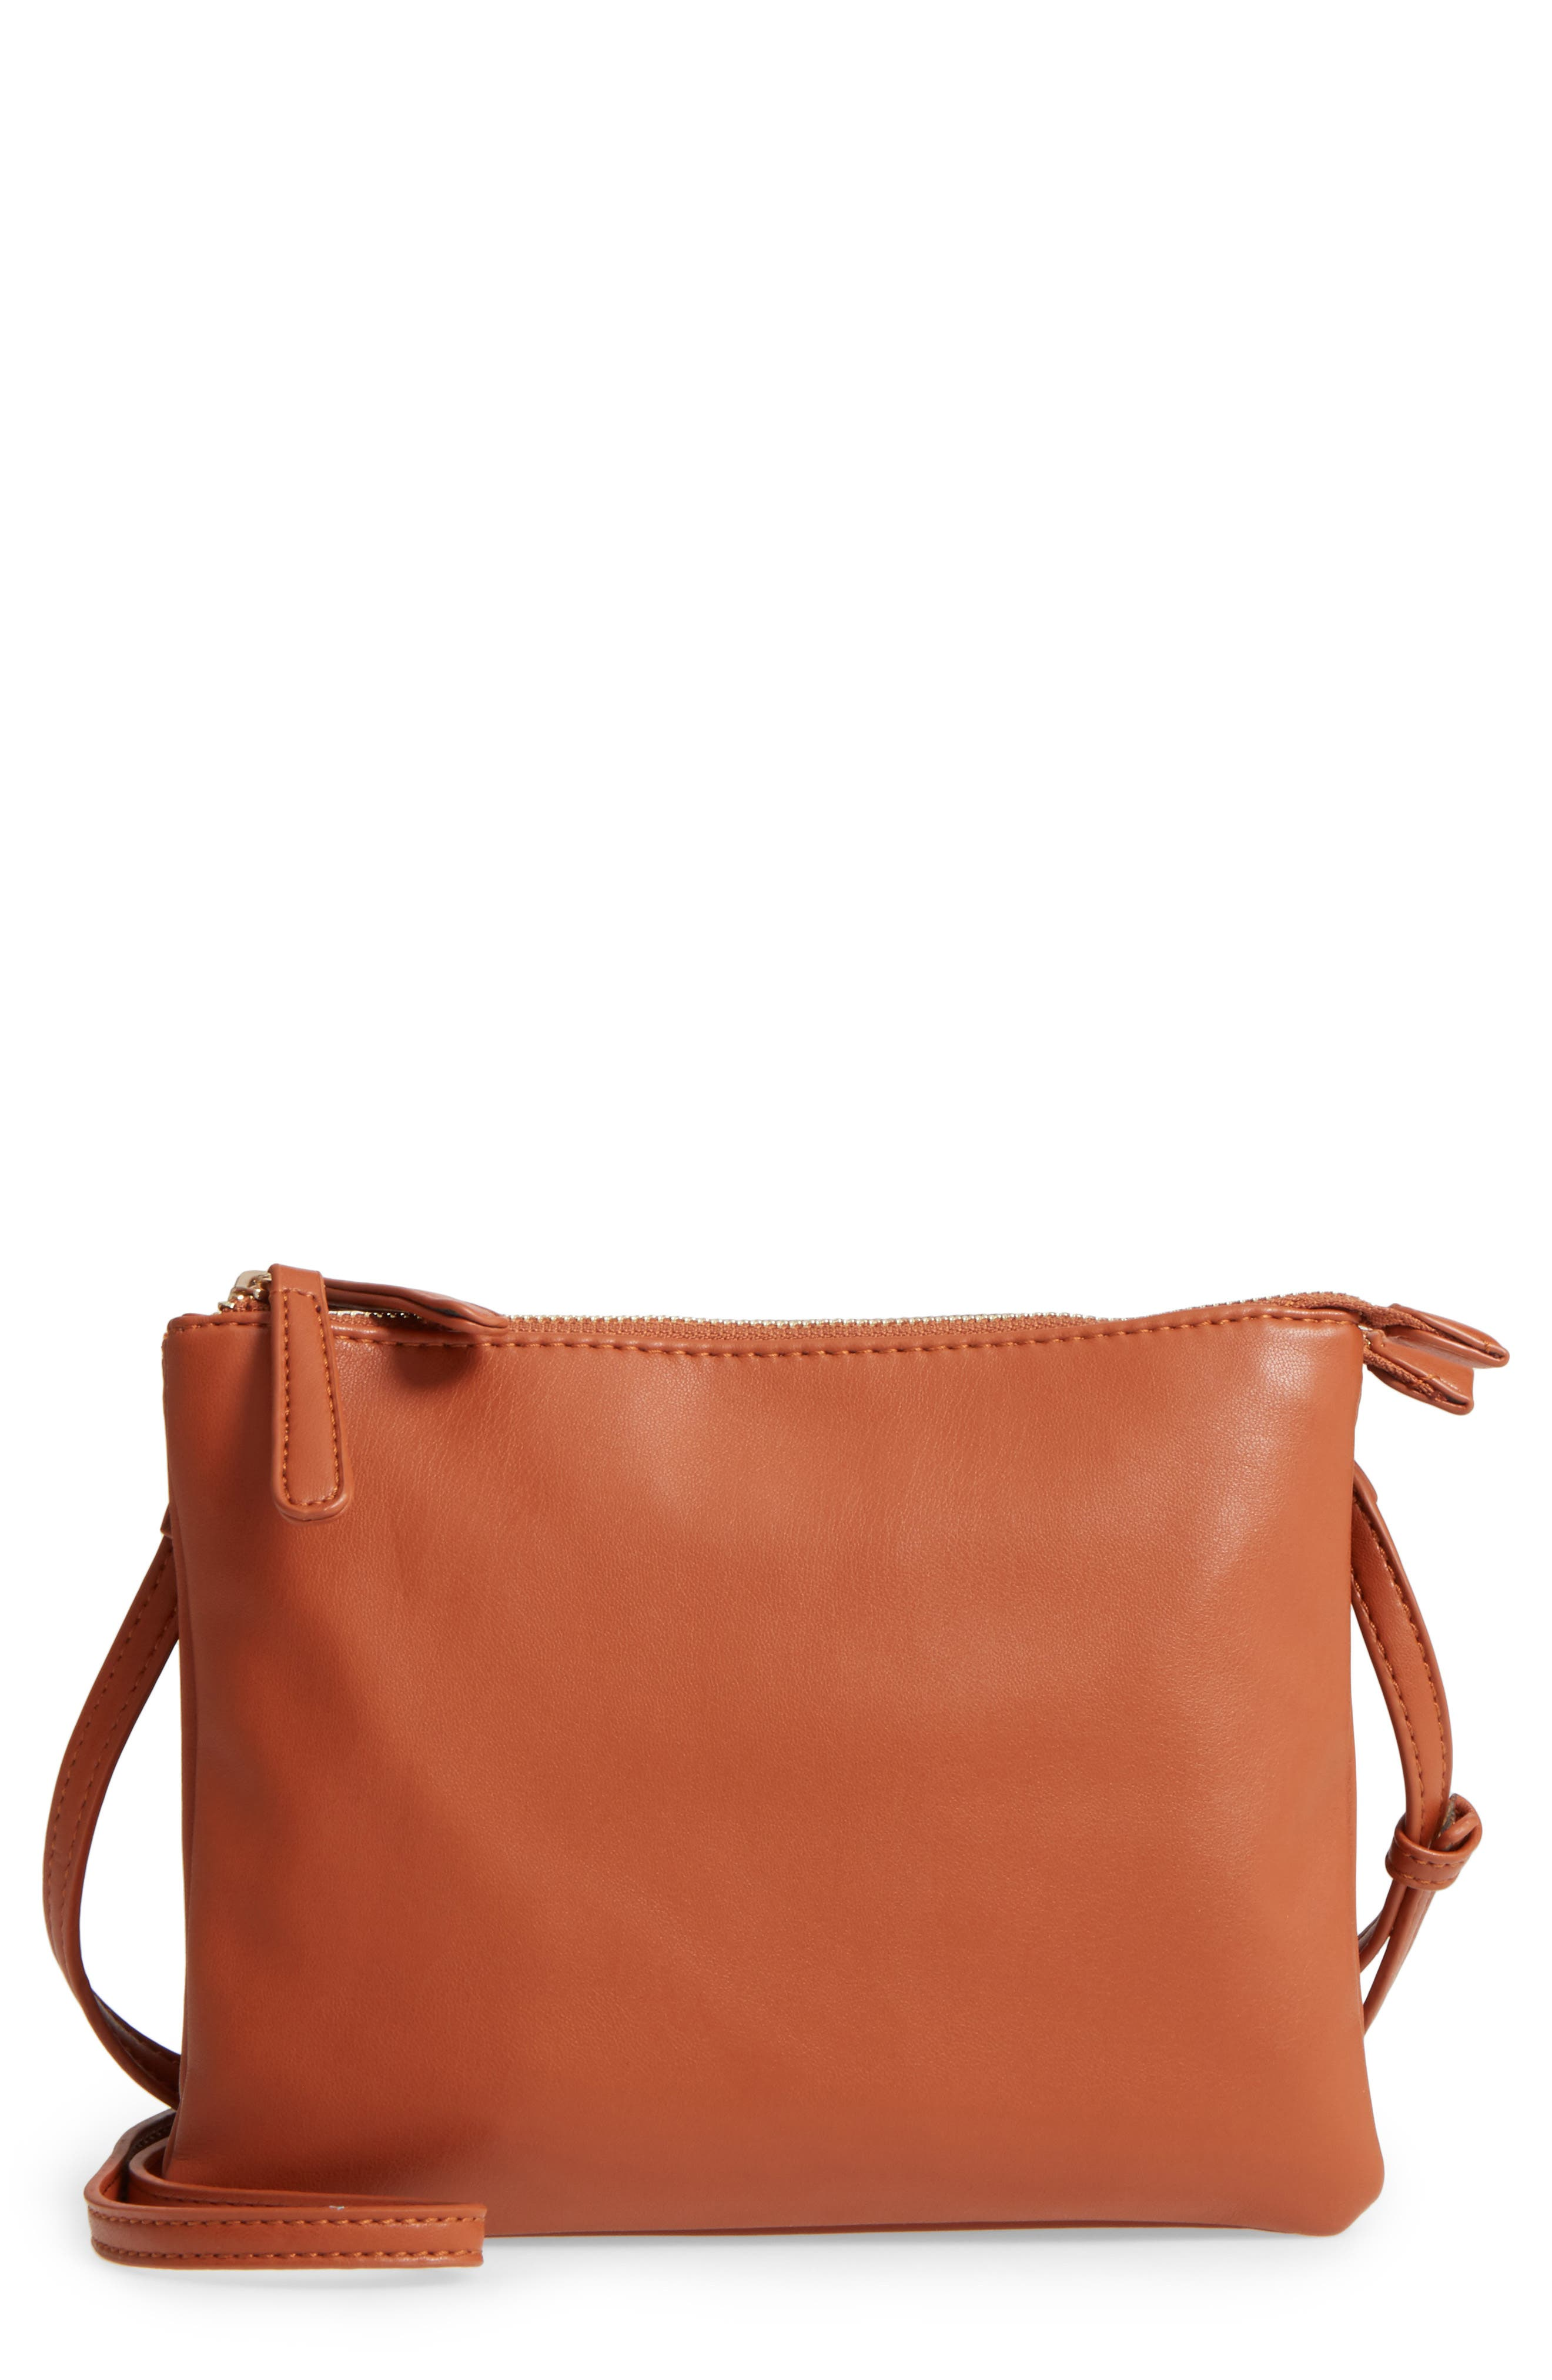 Alternate Image 1 Selected - Sole Society Madden Faux Leather Pouch Crossbody Bag